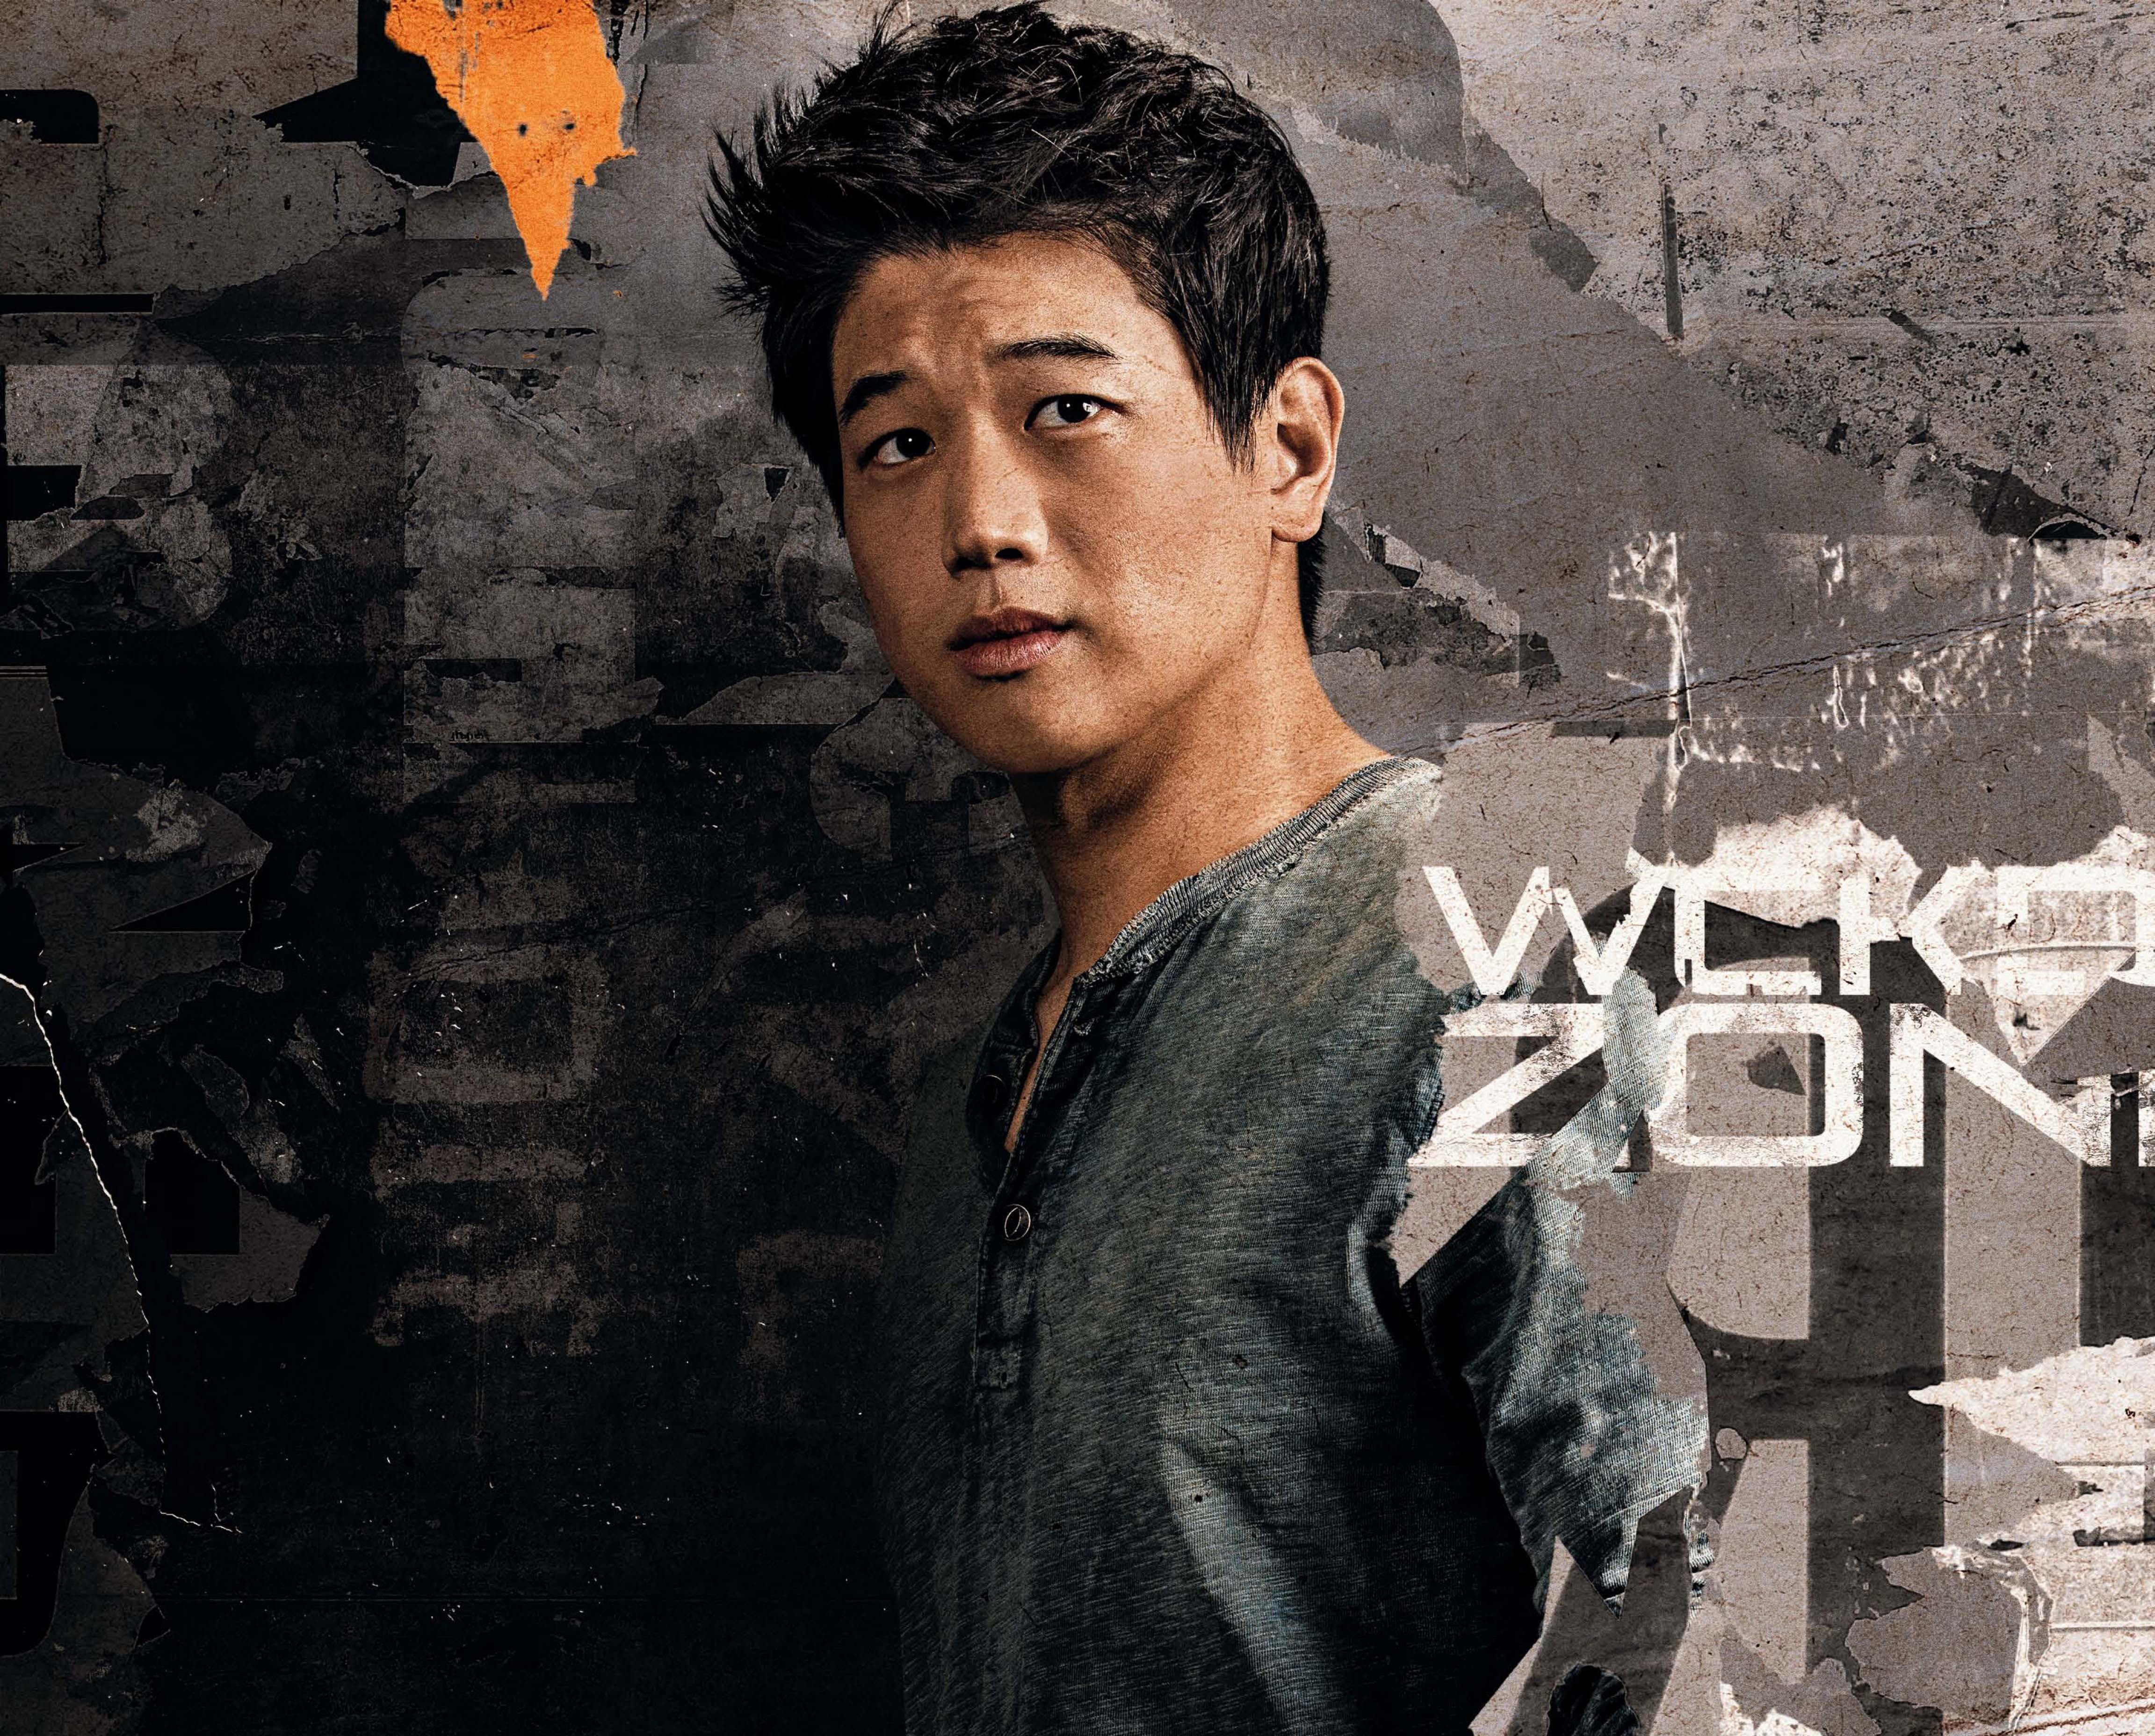 Ki Hong Lee In Maze Runner The Death Cure 2018 Wallpaper Hd Movies 4k Wallpapers Images Photos And Background